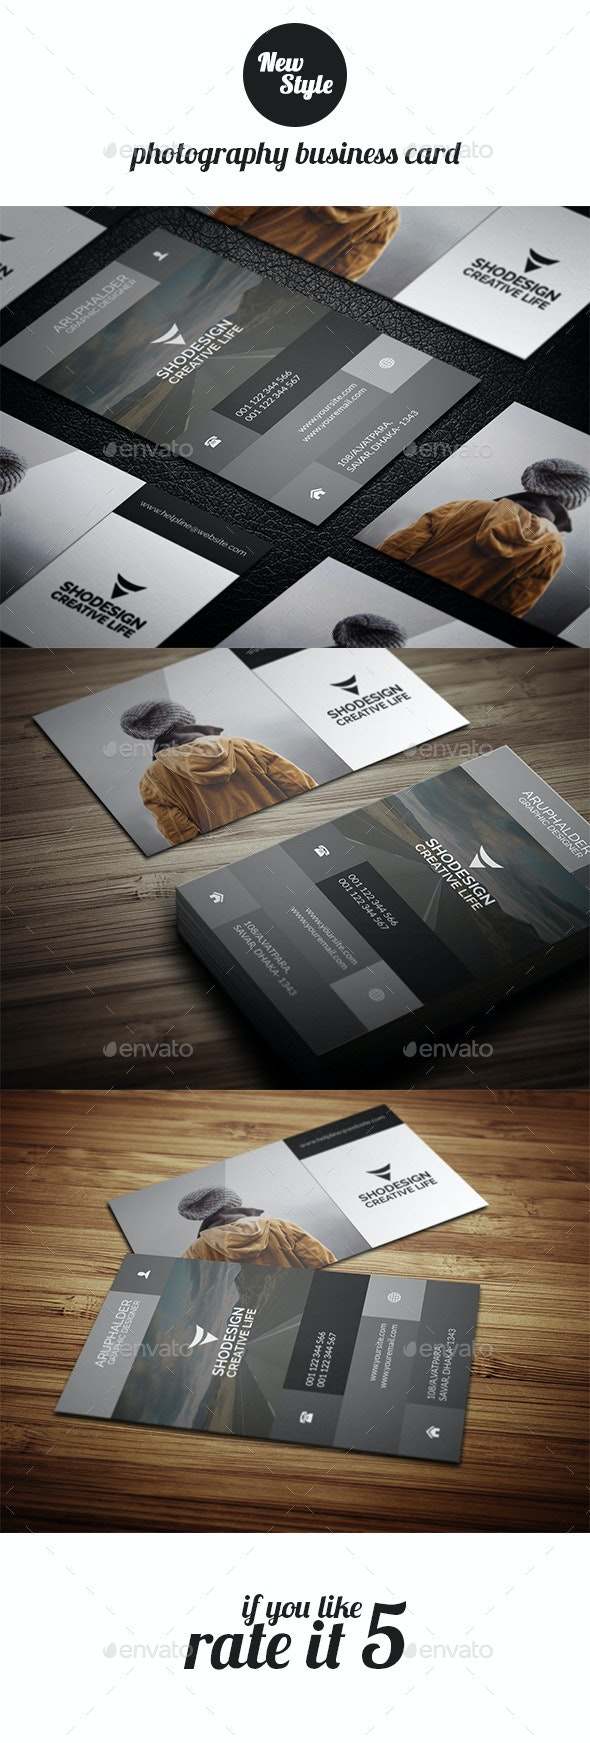 Photography Busienss Card Template - Business Cards Print Templates